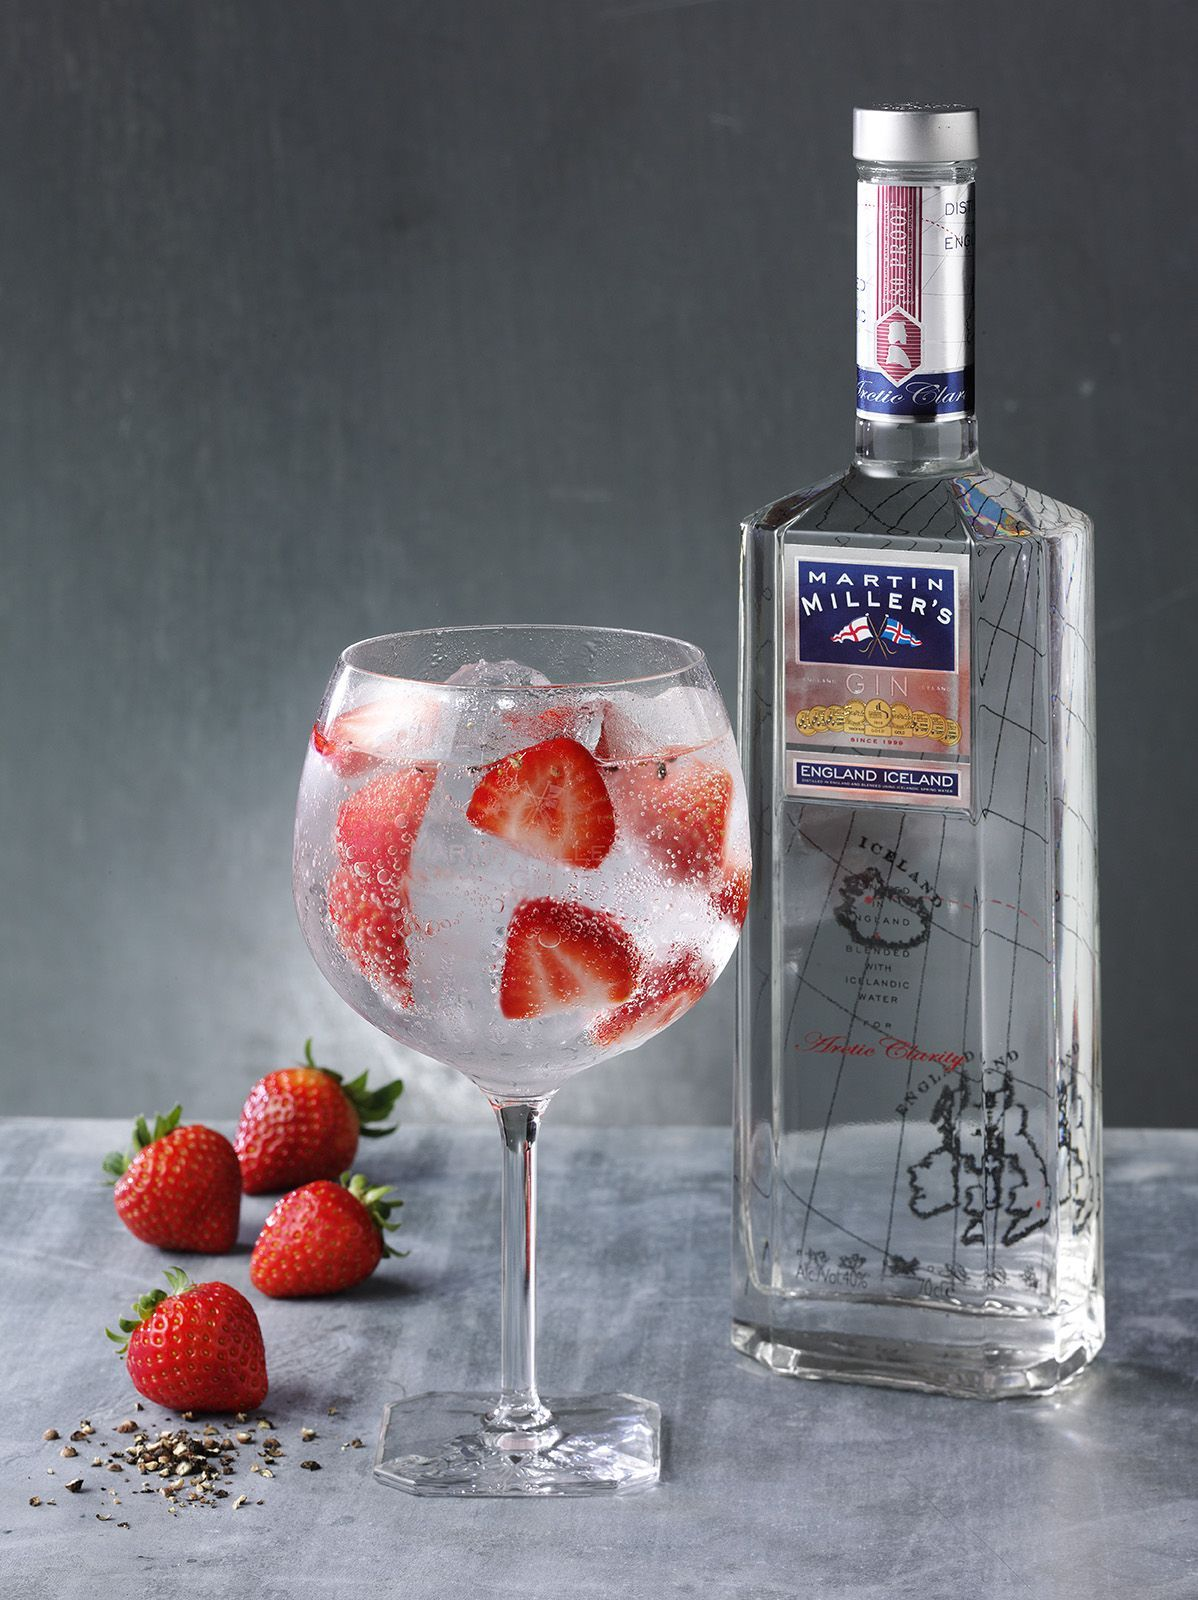 martin-millers-gin-bottle-with-gt-strawberry-black-pepper